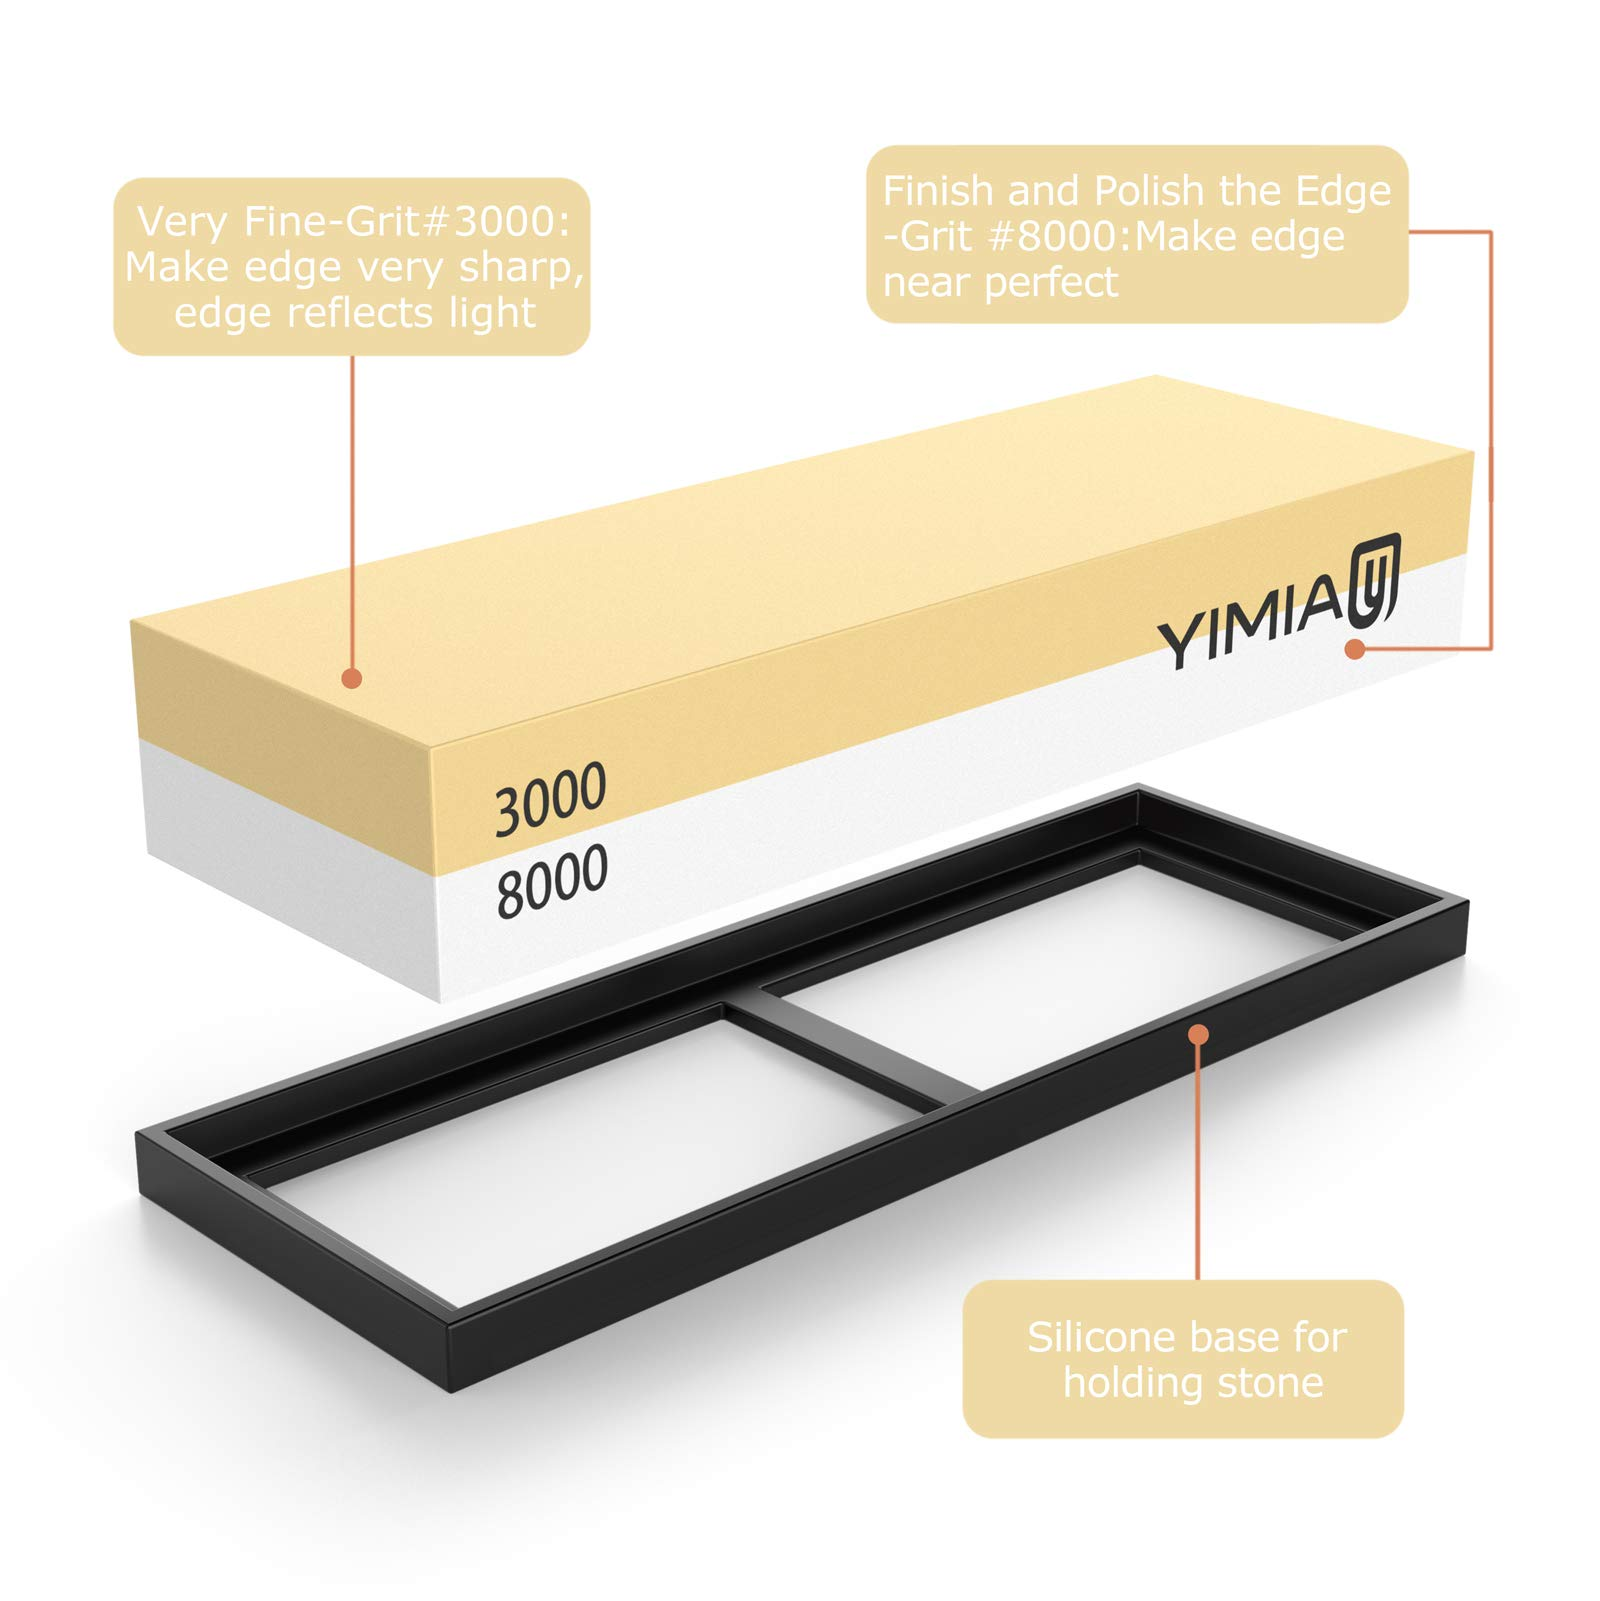 Sharpening Stone Kit, YIMIA 4 Side Grit 400/1000 3000/8000 Whetstone, Knife Sharpener Waterstone with Non-Slip Bamboo Base & Flattening Stone & Angle Guide by YIMIA (Image #2)